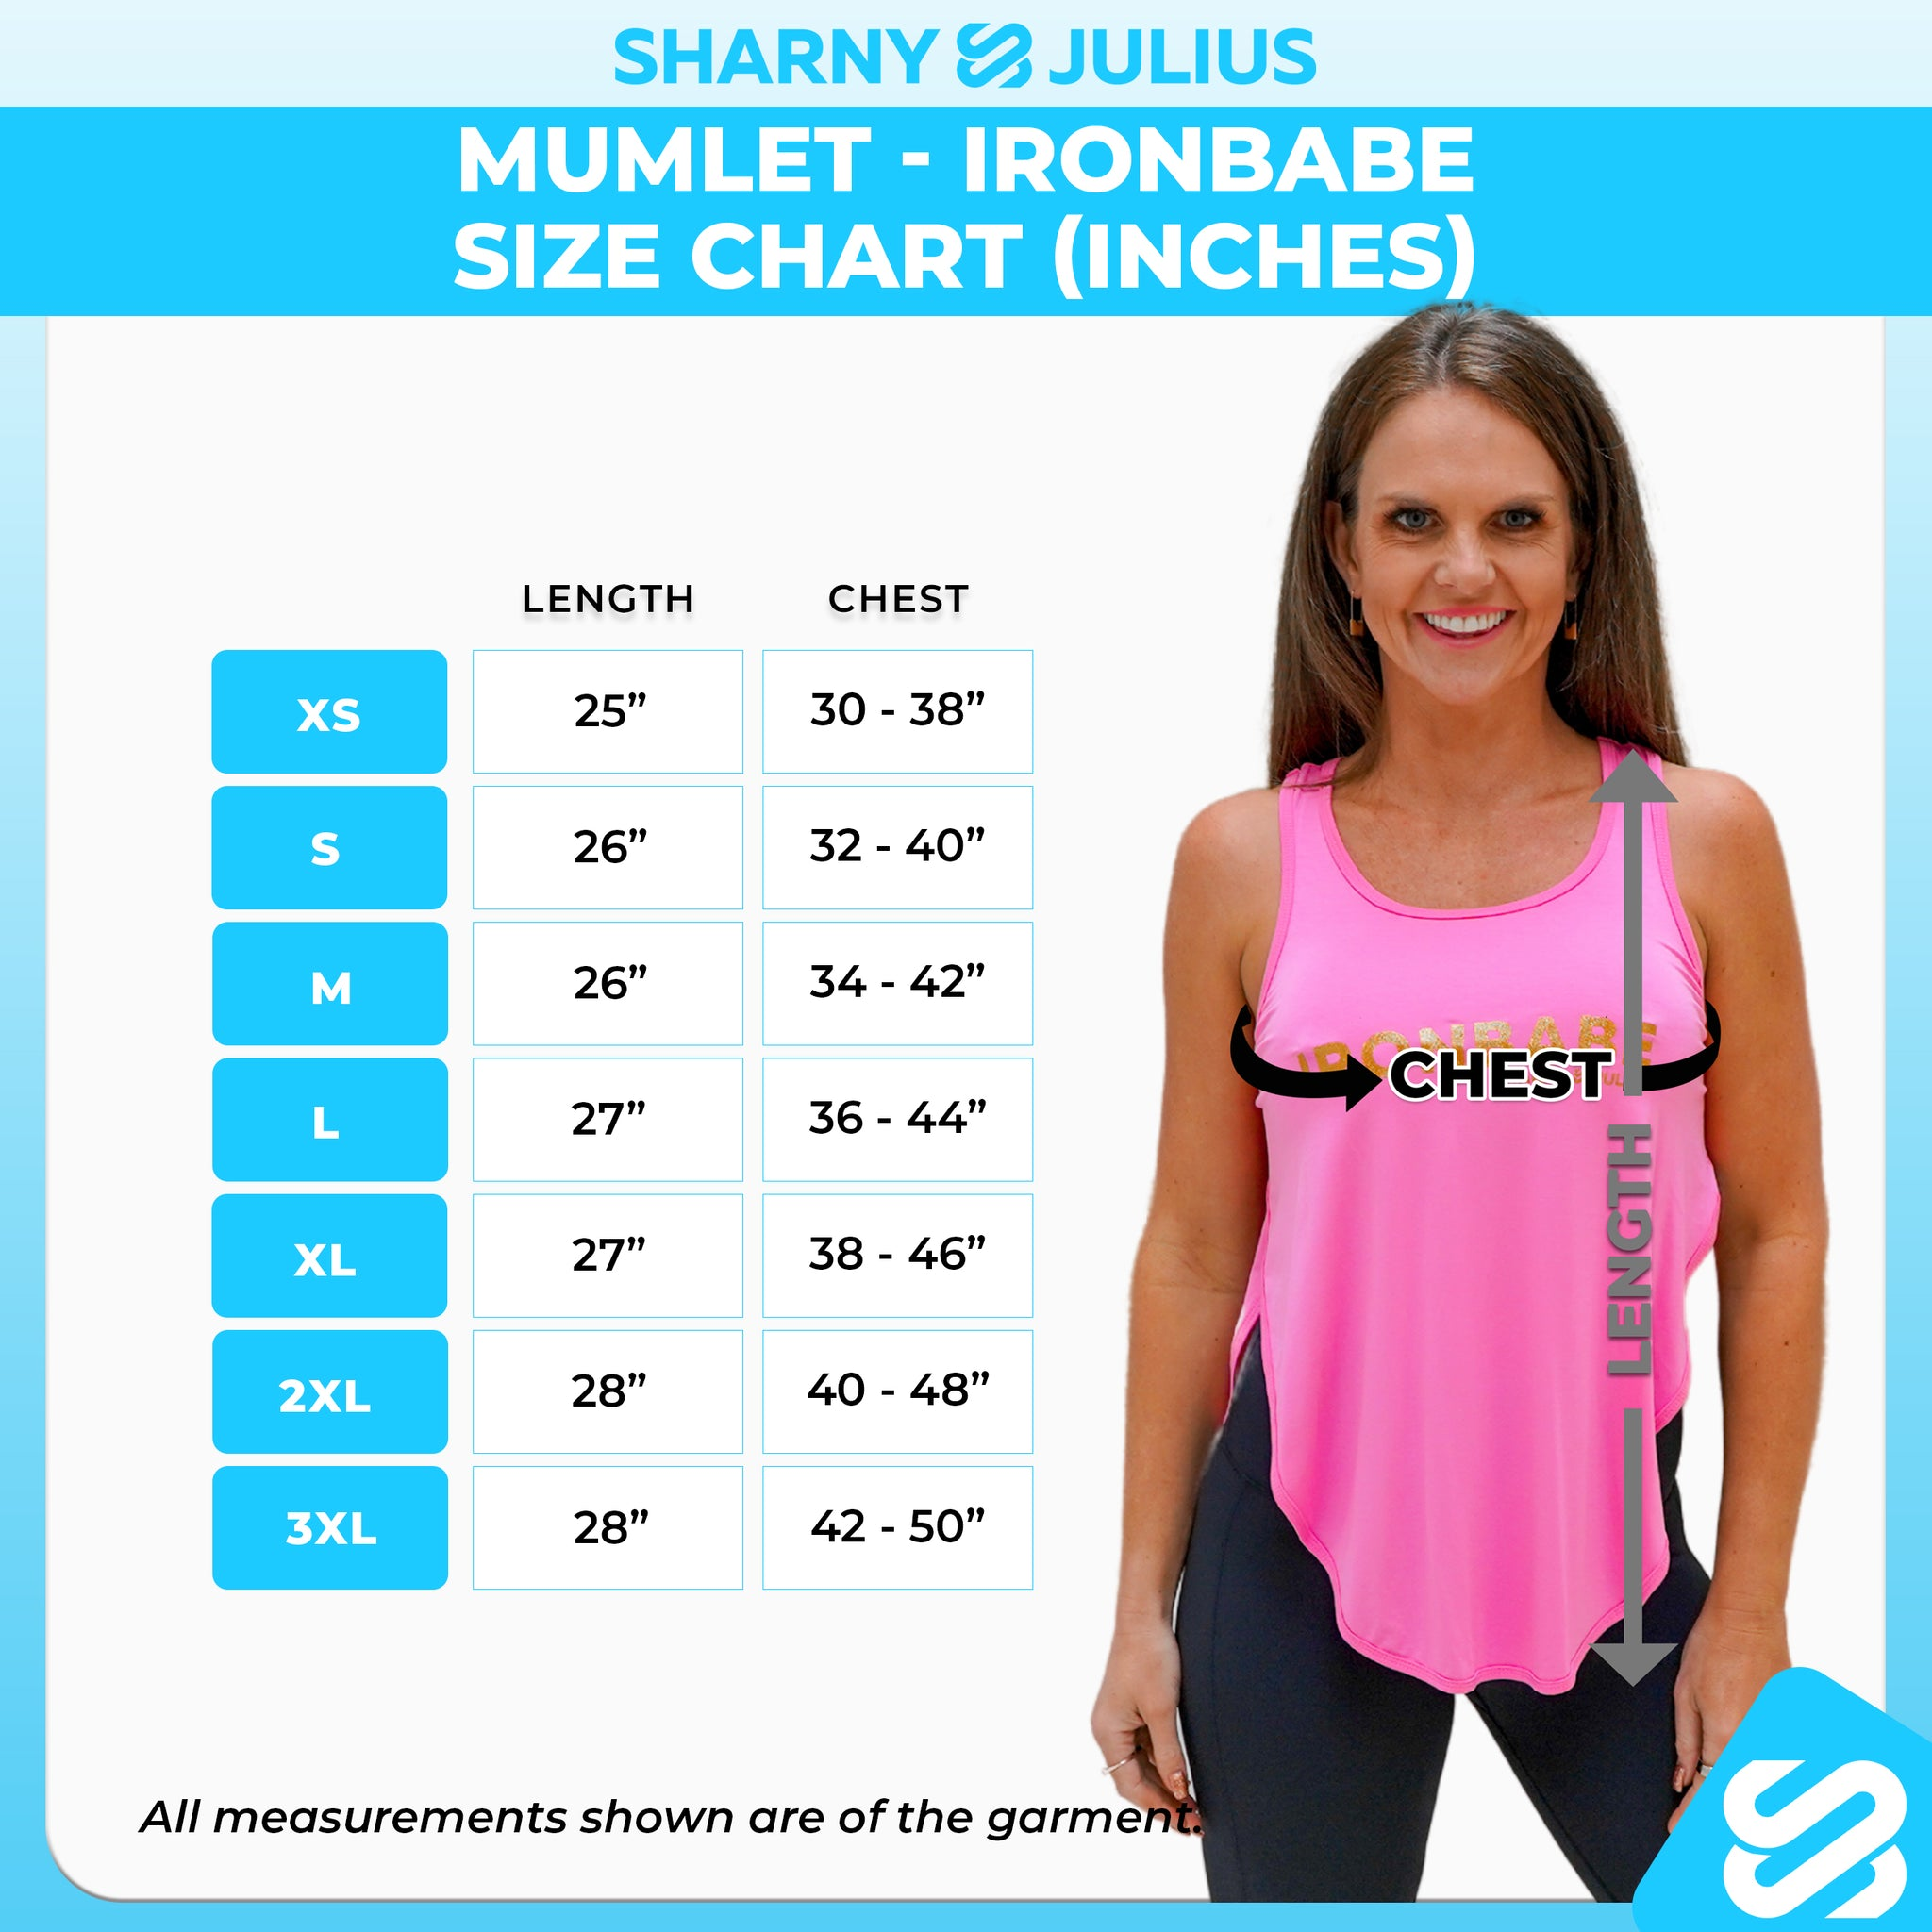 ironbabe size chart inches